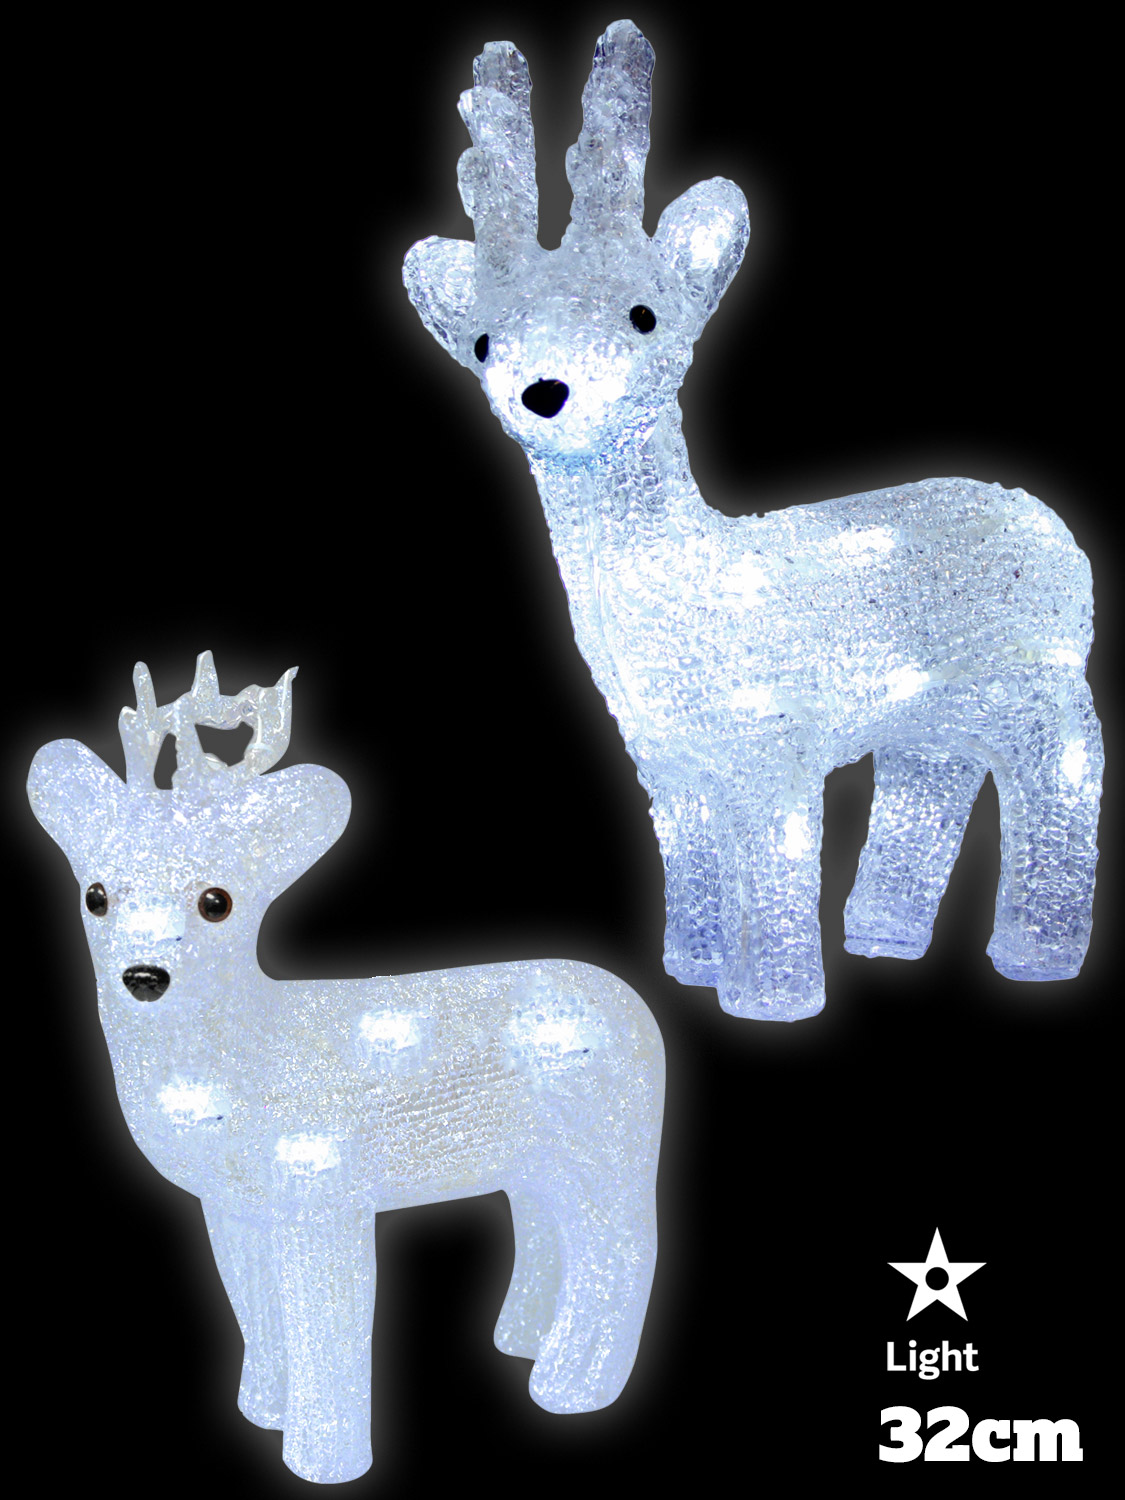 Details about Light Up Reindeer Acrylic Crystal Effect Christmas Decoration LED Indoor Xmas